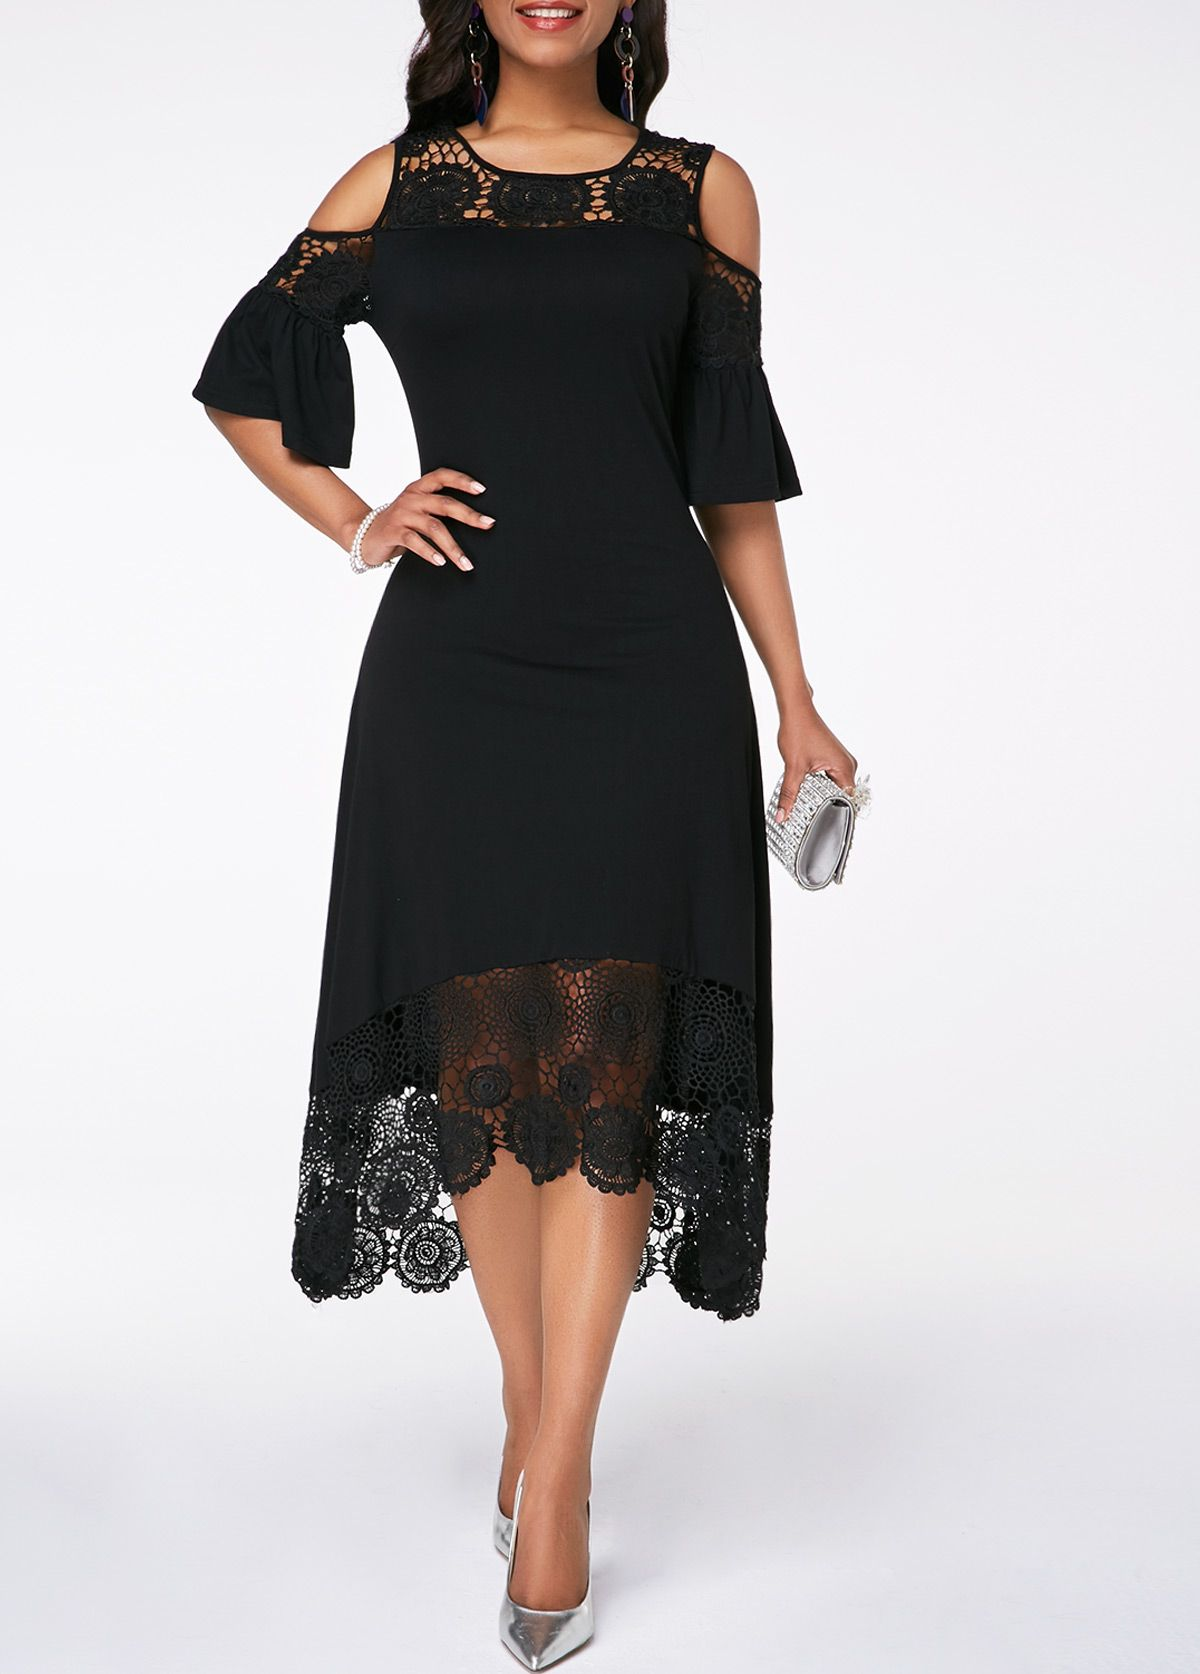 08b50f422adb Flare Cuff Cold Shoulder Crochet Detail Dress | Rotita.com - USD $33.63